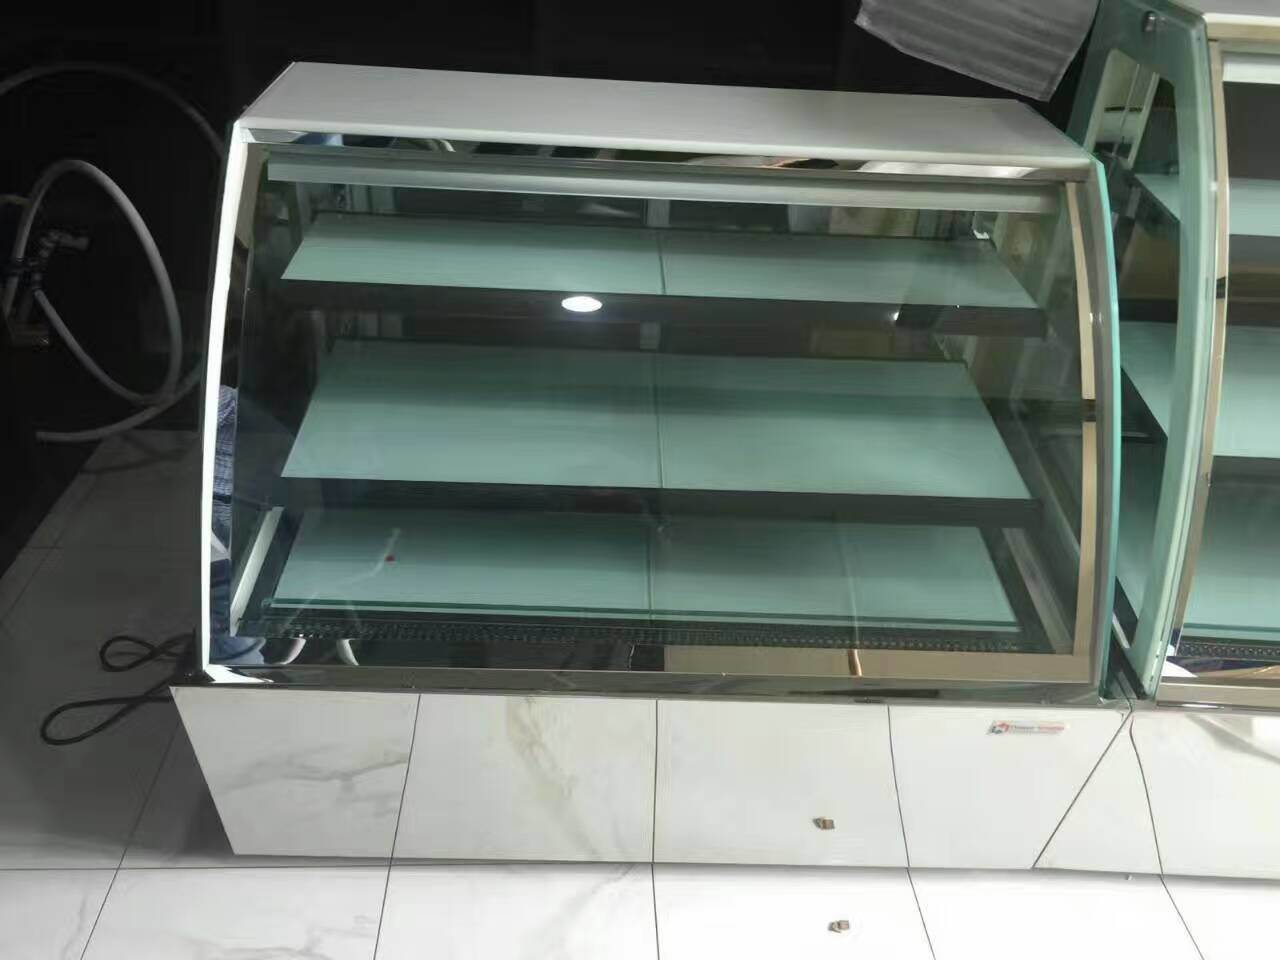 Bakery Display Cabinet Hot Item China Most Popular Bakery Display Cabinet Refrigerated Cake Display Case